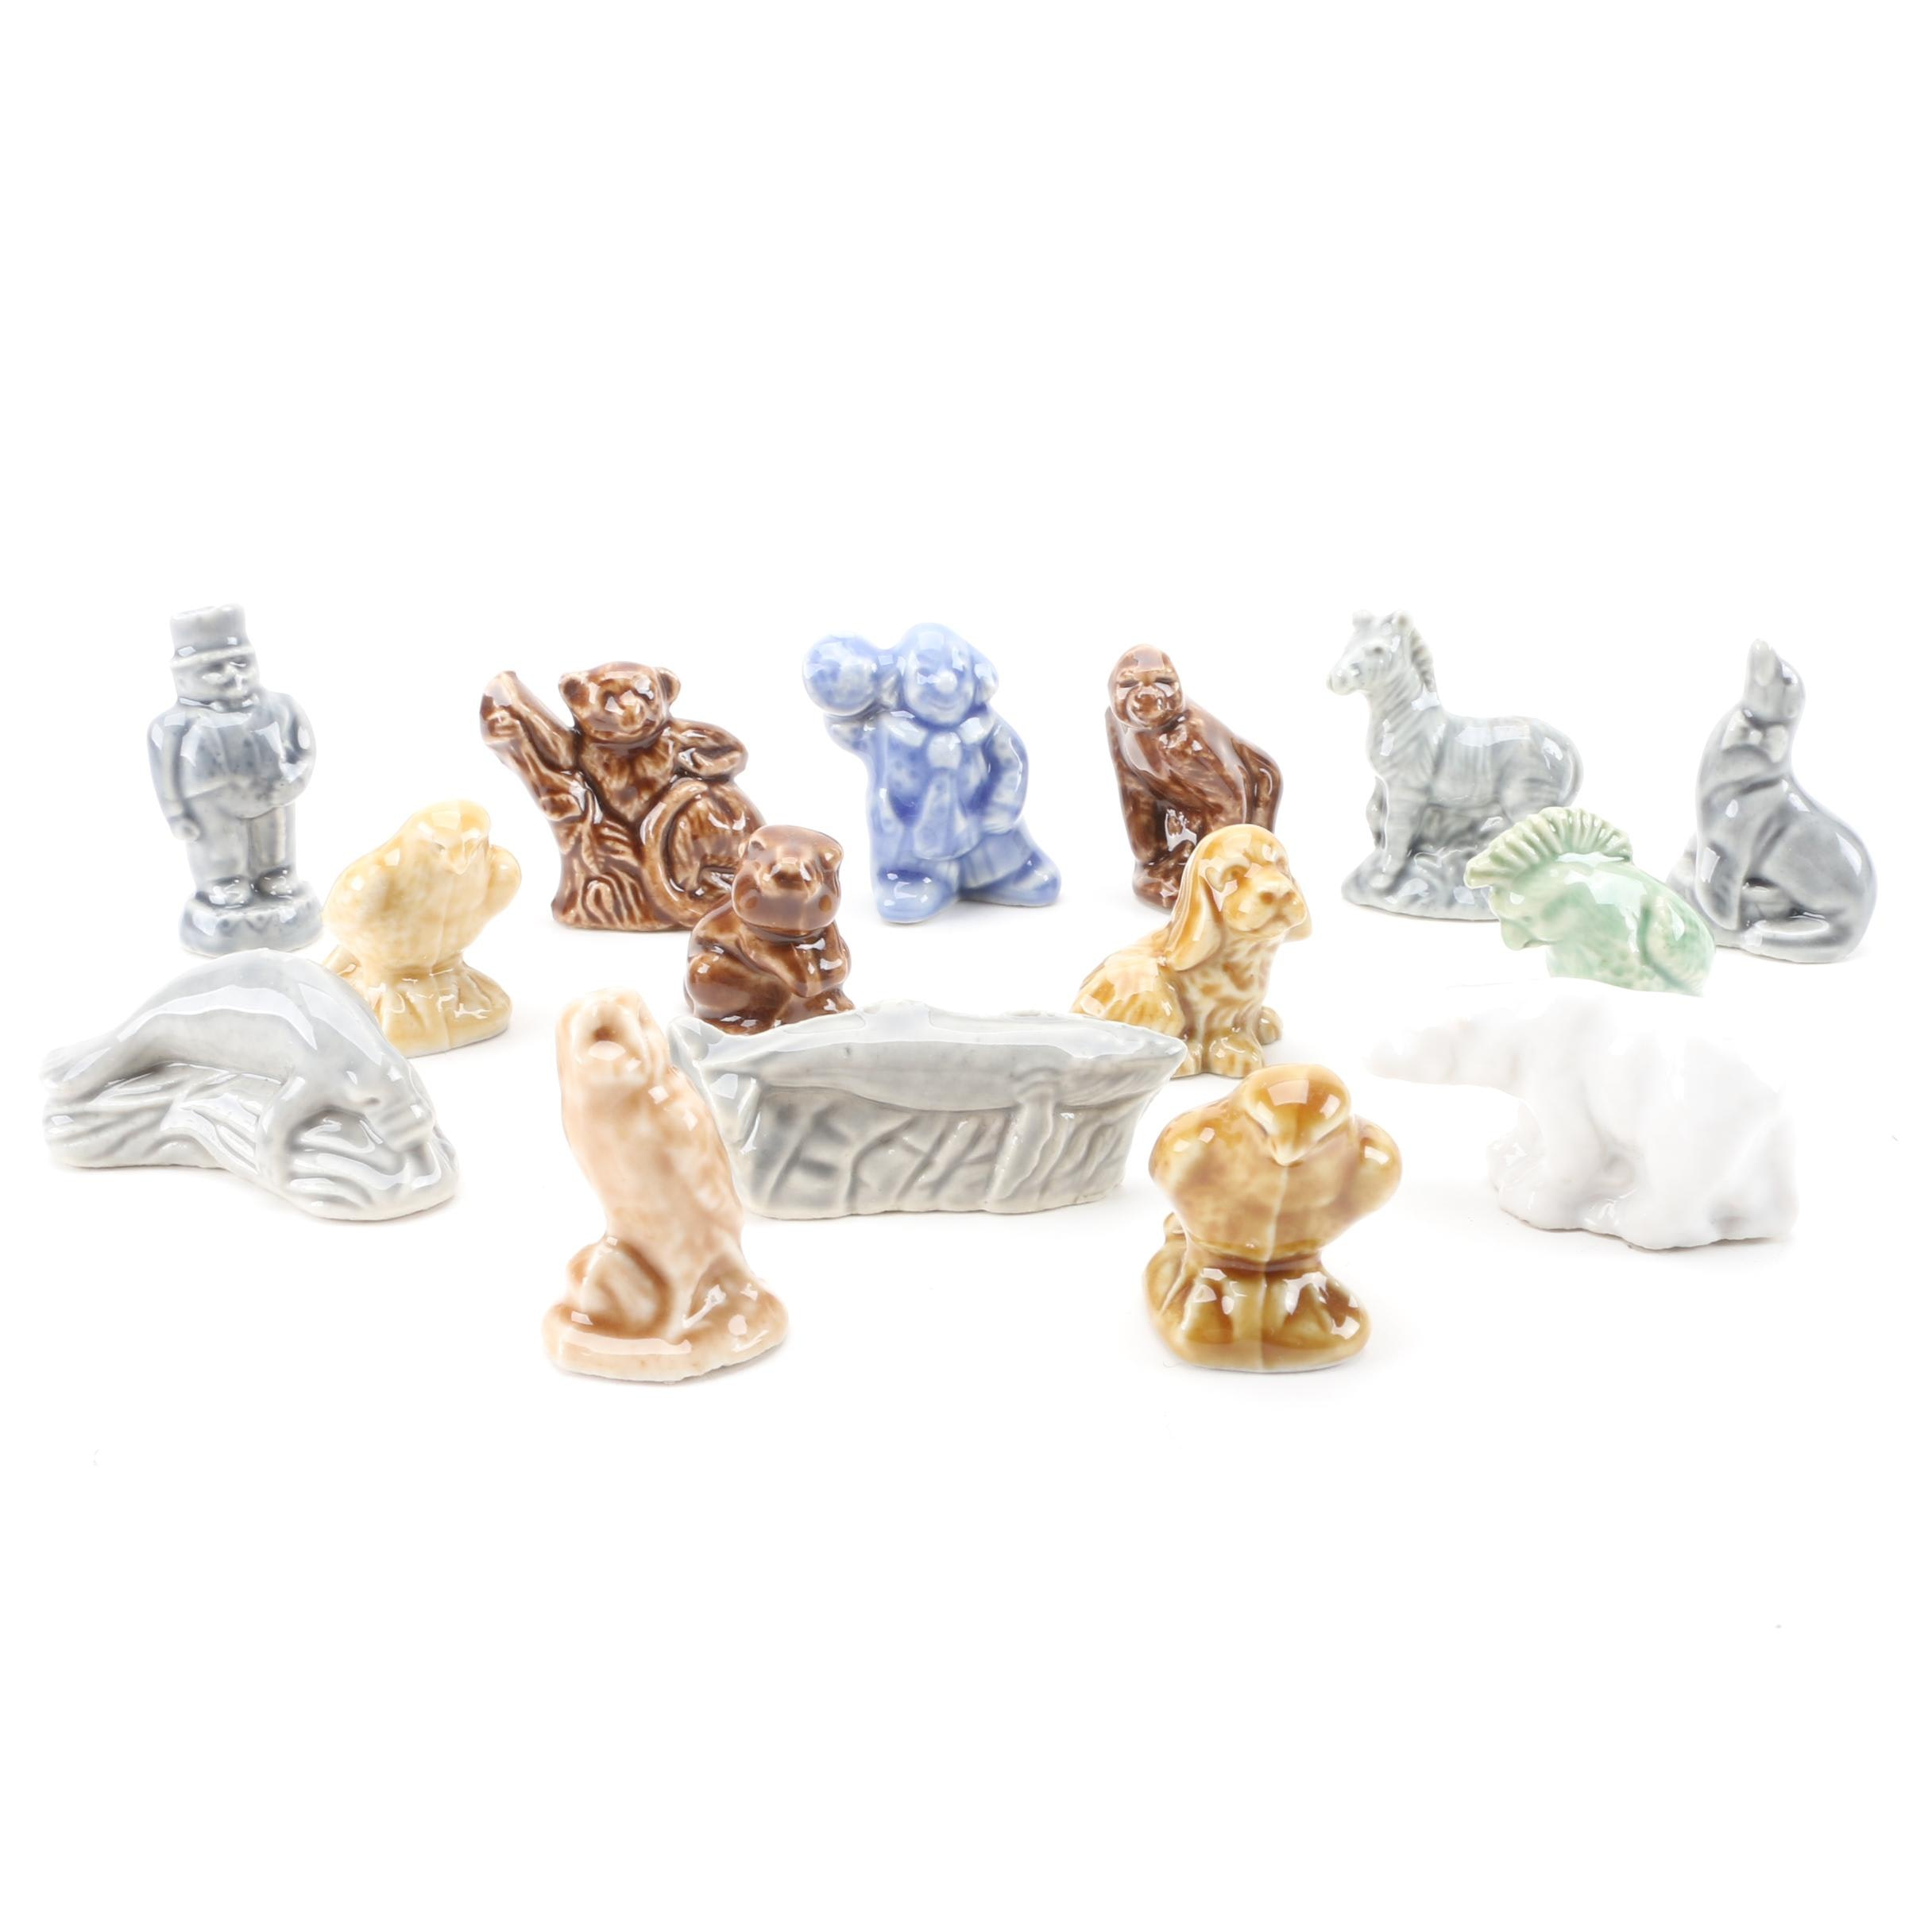 Wade Whimsies Style Ceramic Figurines